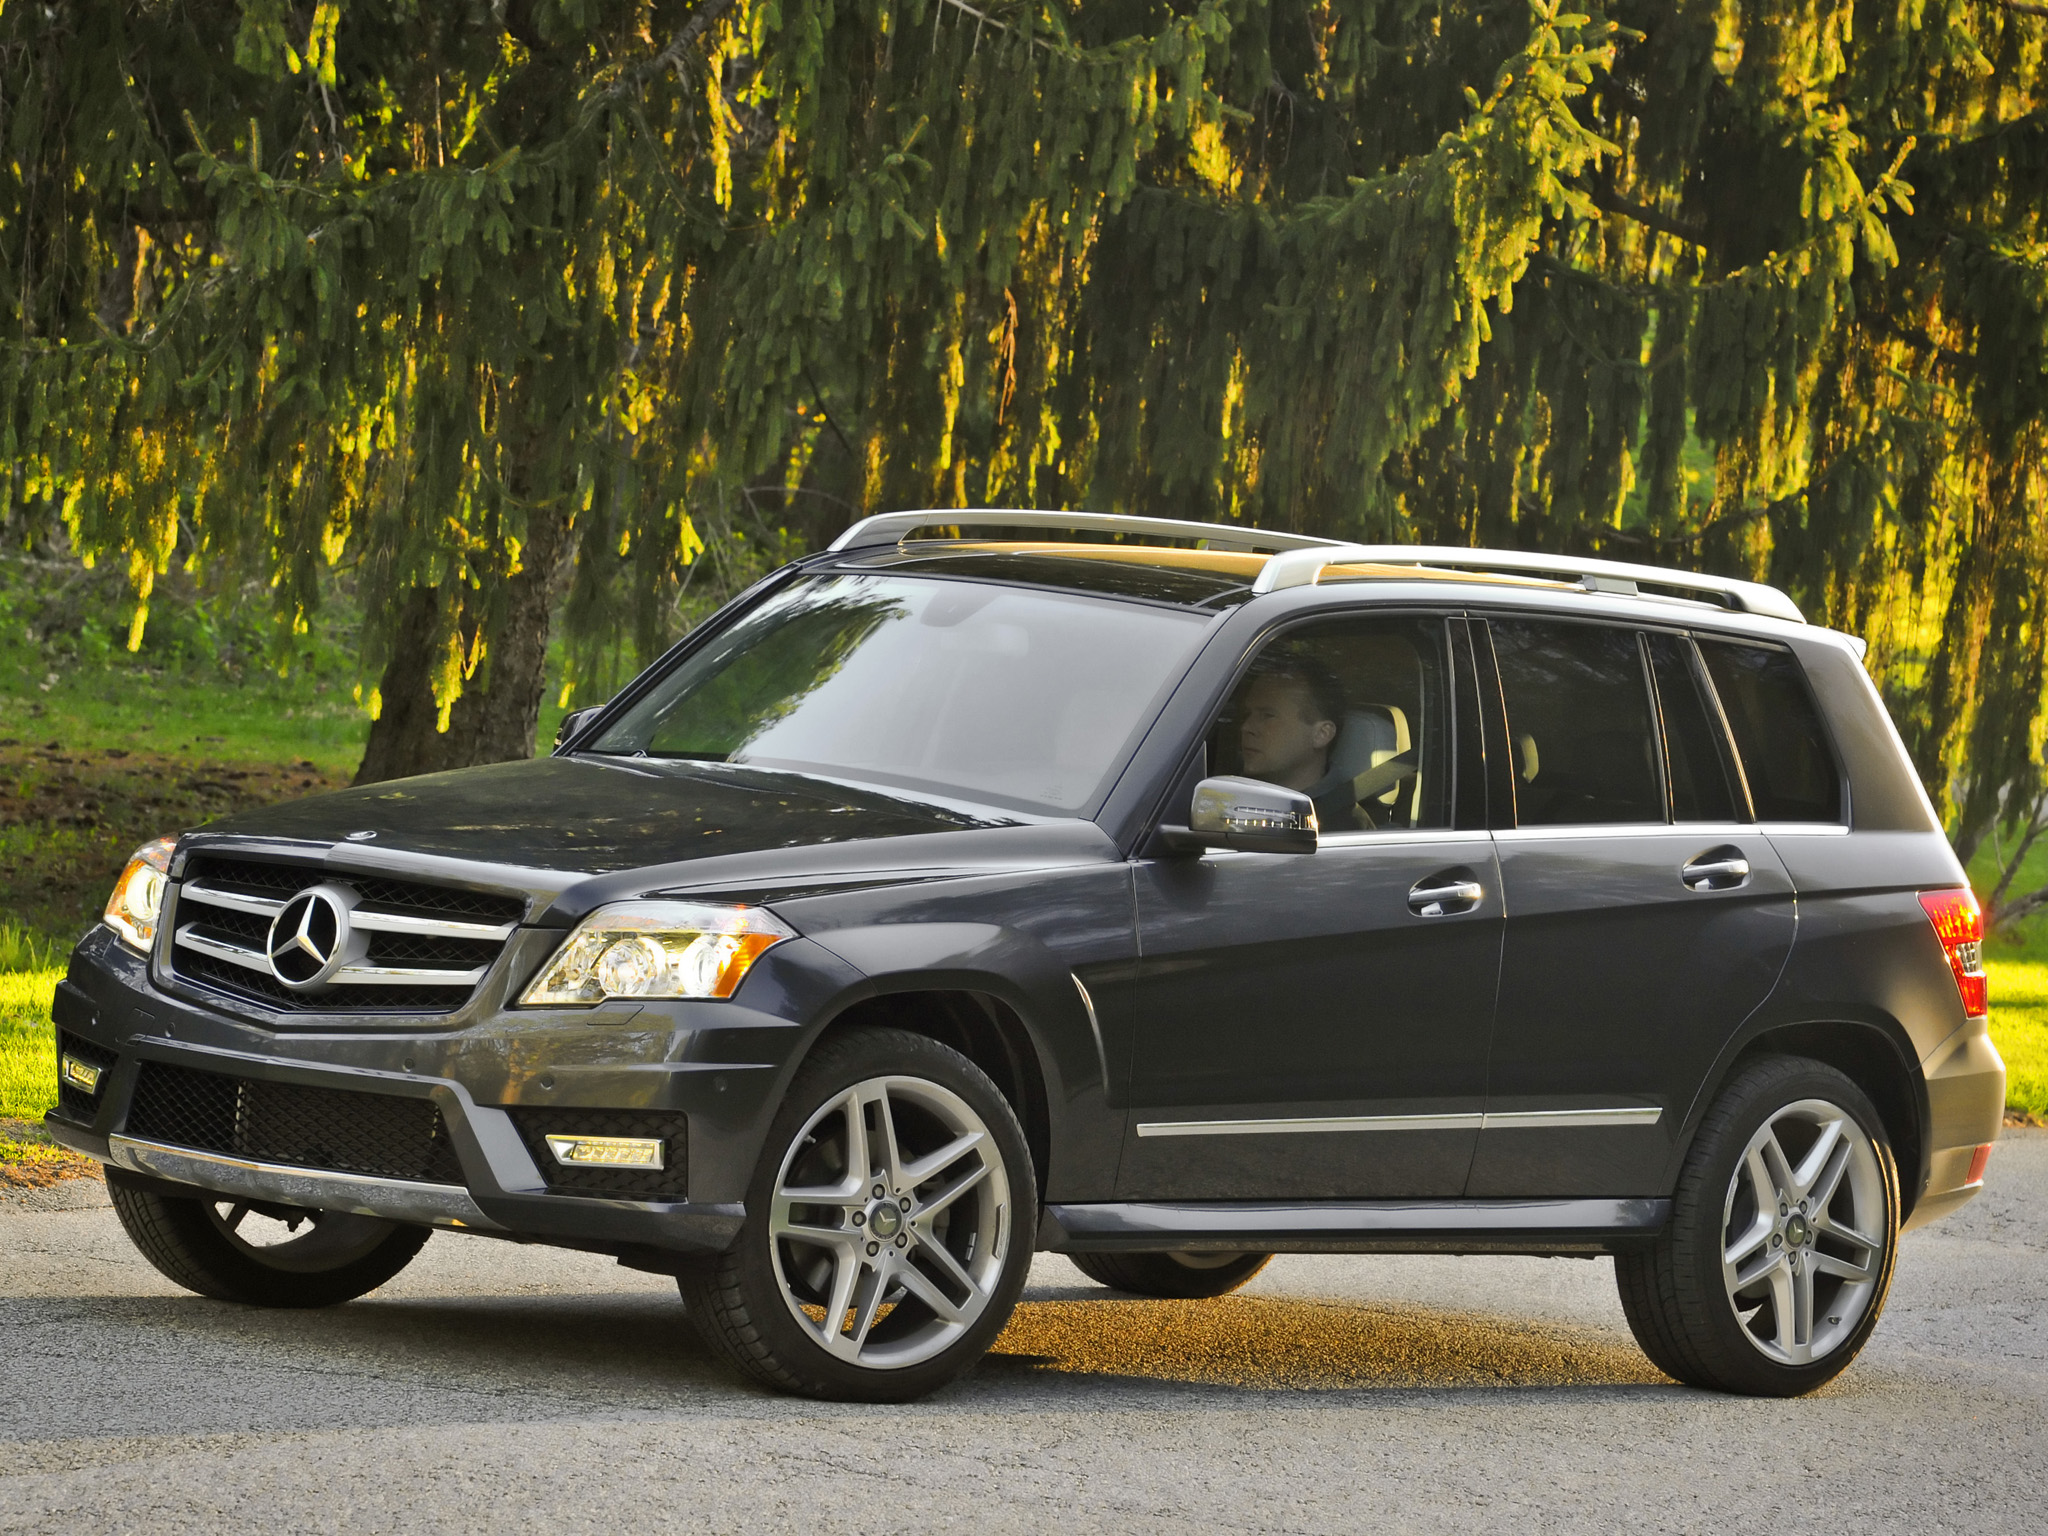 Mercedes-Benz GLK AMG photos - Photo Gallery Page #3| CarsBase.com